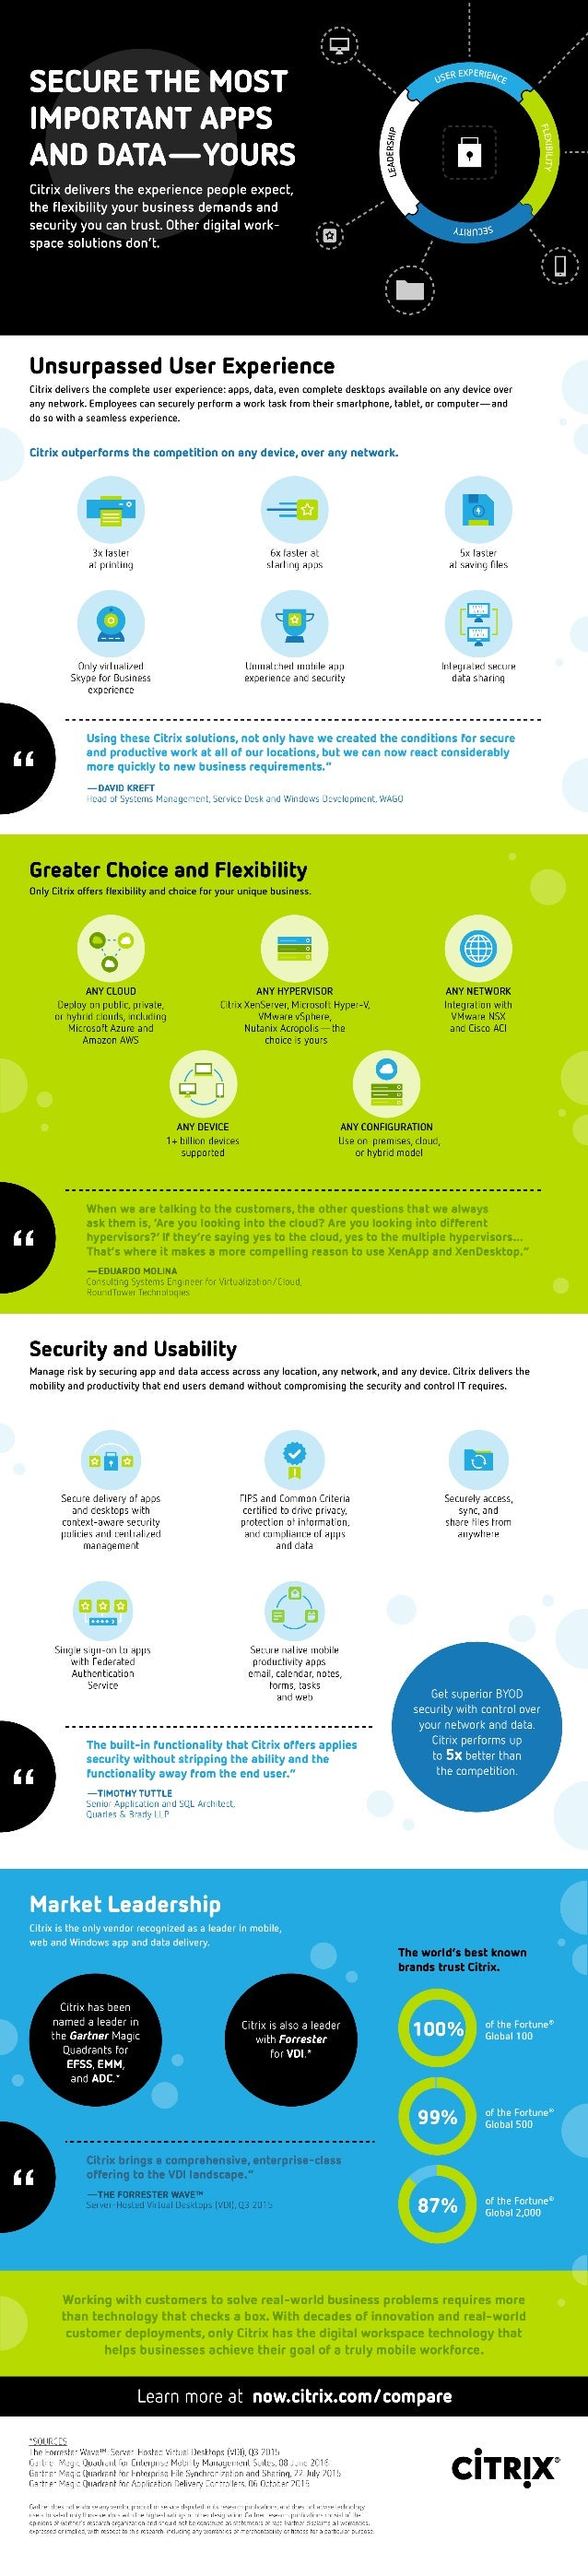 Why Citrix beats VMware [Infographic]